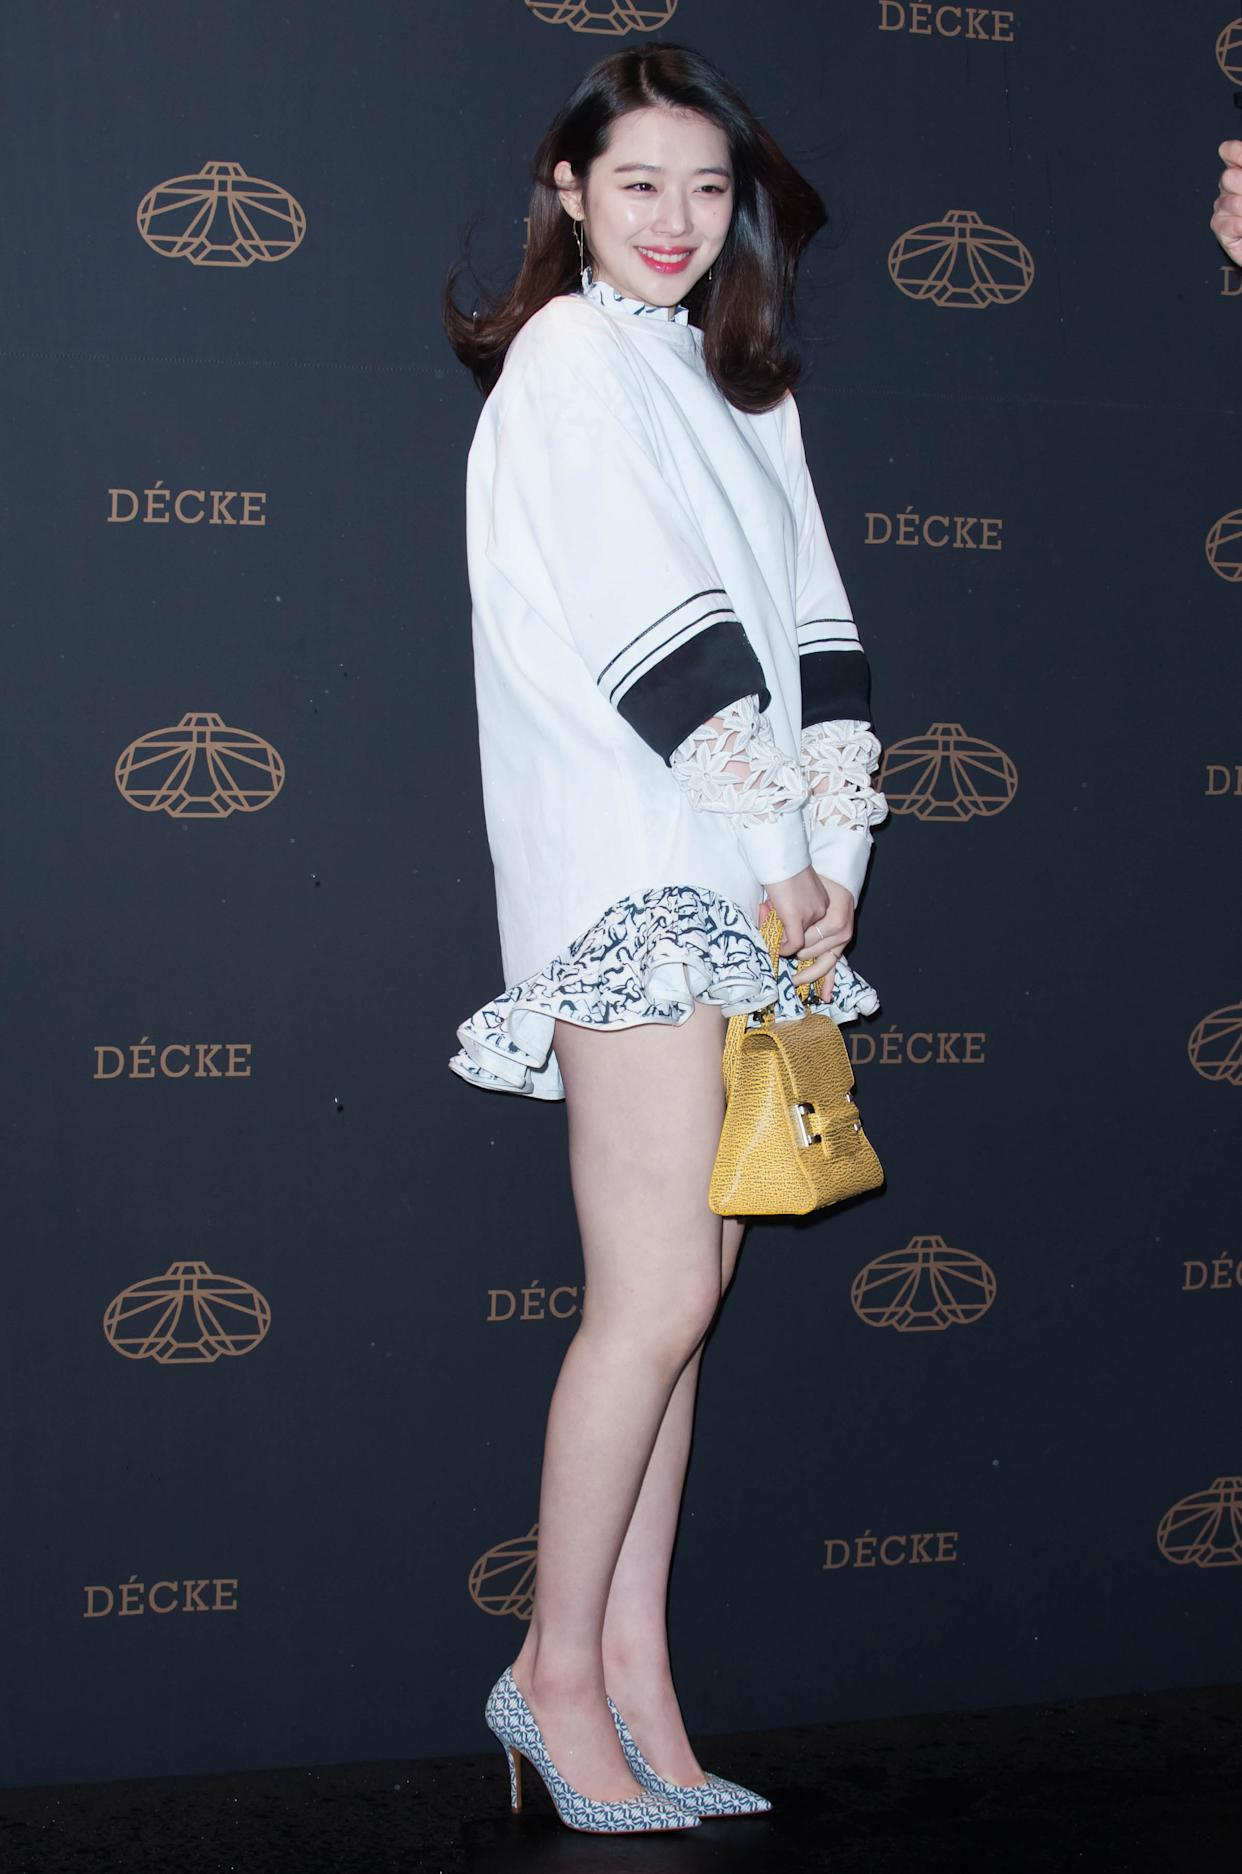 SEOUL, SOUTH KOREA - MARCH 20:  Sulli of f(x) poses for photographs during the DECKE flagship store opening event on March 20, 2014 in Seoul, South Korea.  (Photo by Choi Soo-Young/Multi-Bits via Getty Images)